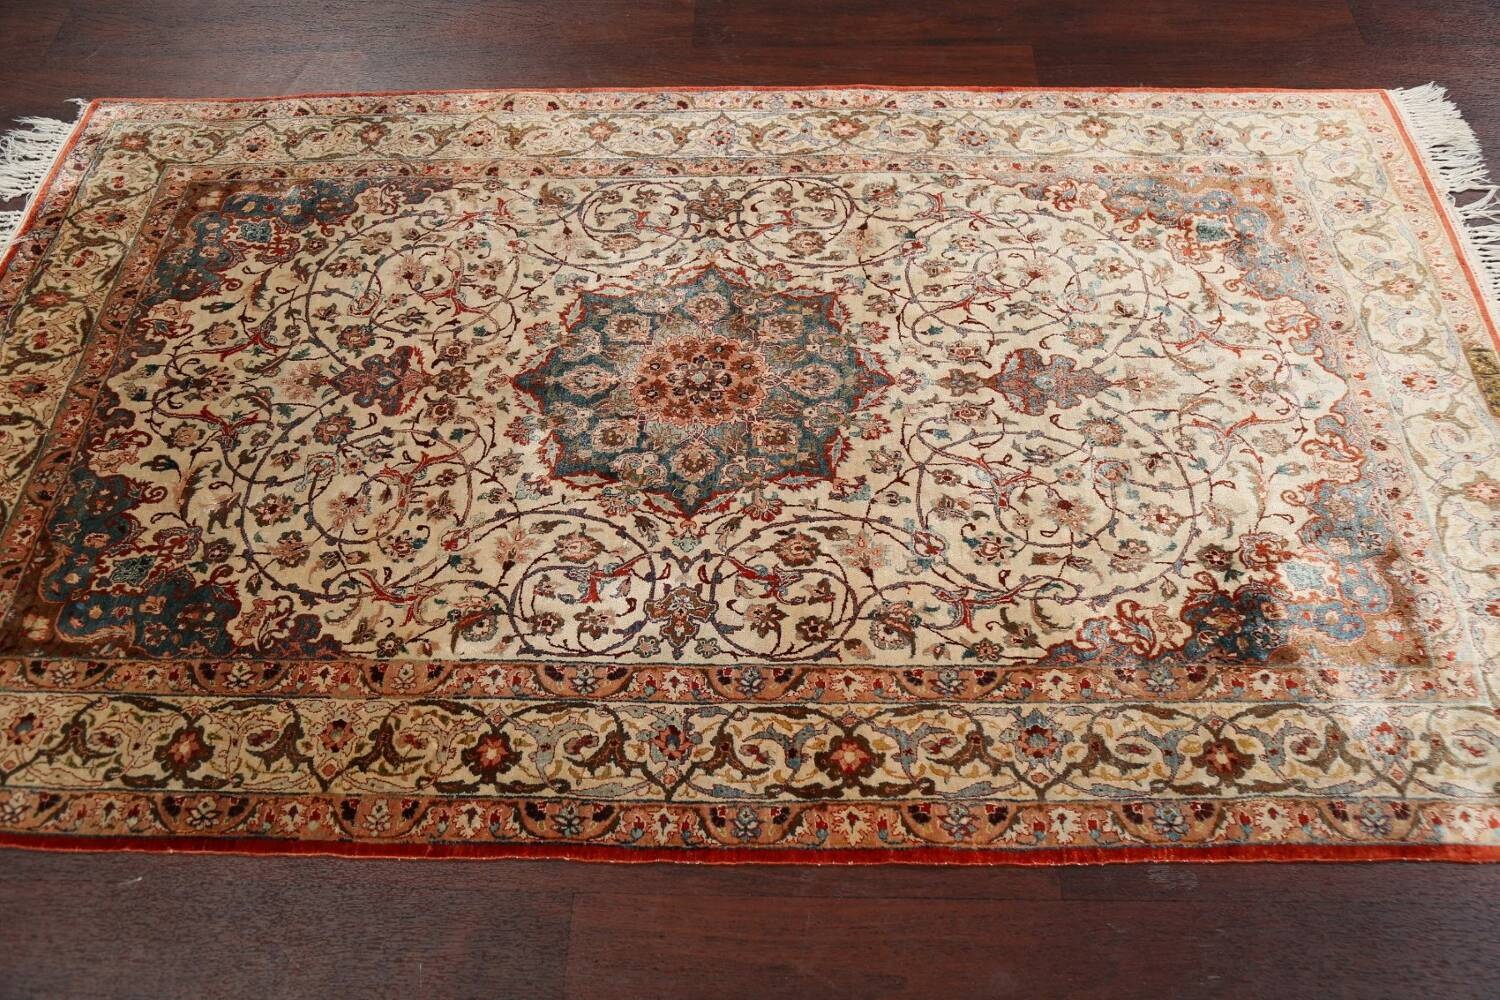 Antique 100% Vegetable Dye Isfahan Persian Area Rug 4x6 image 15